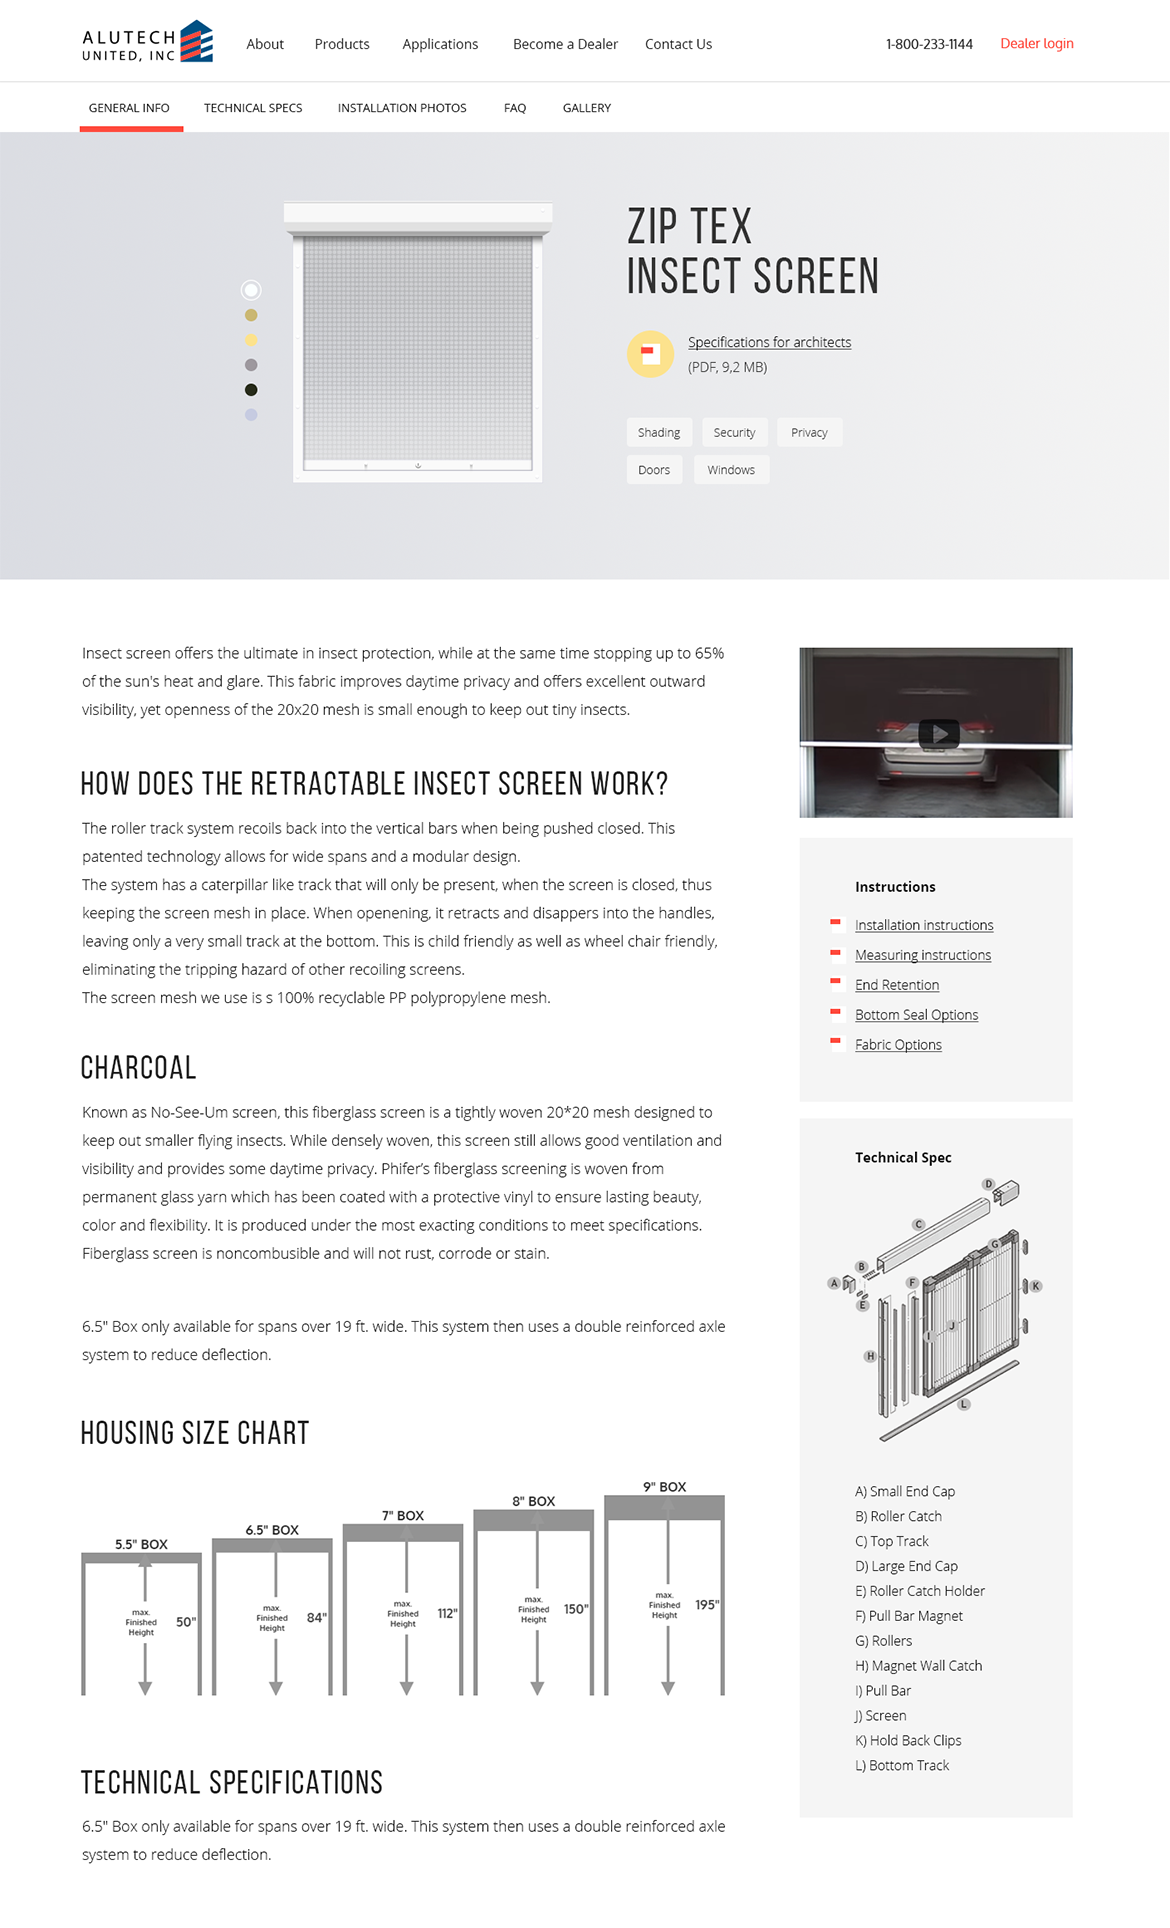 05_Alutech_Product_Page